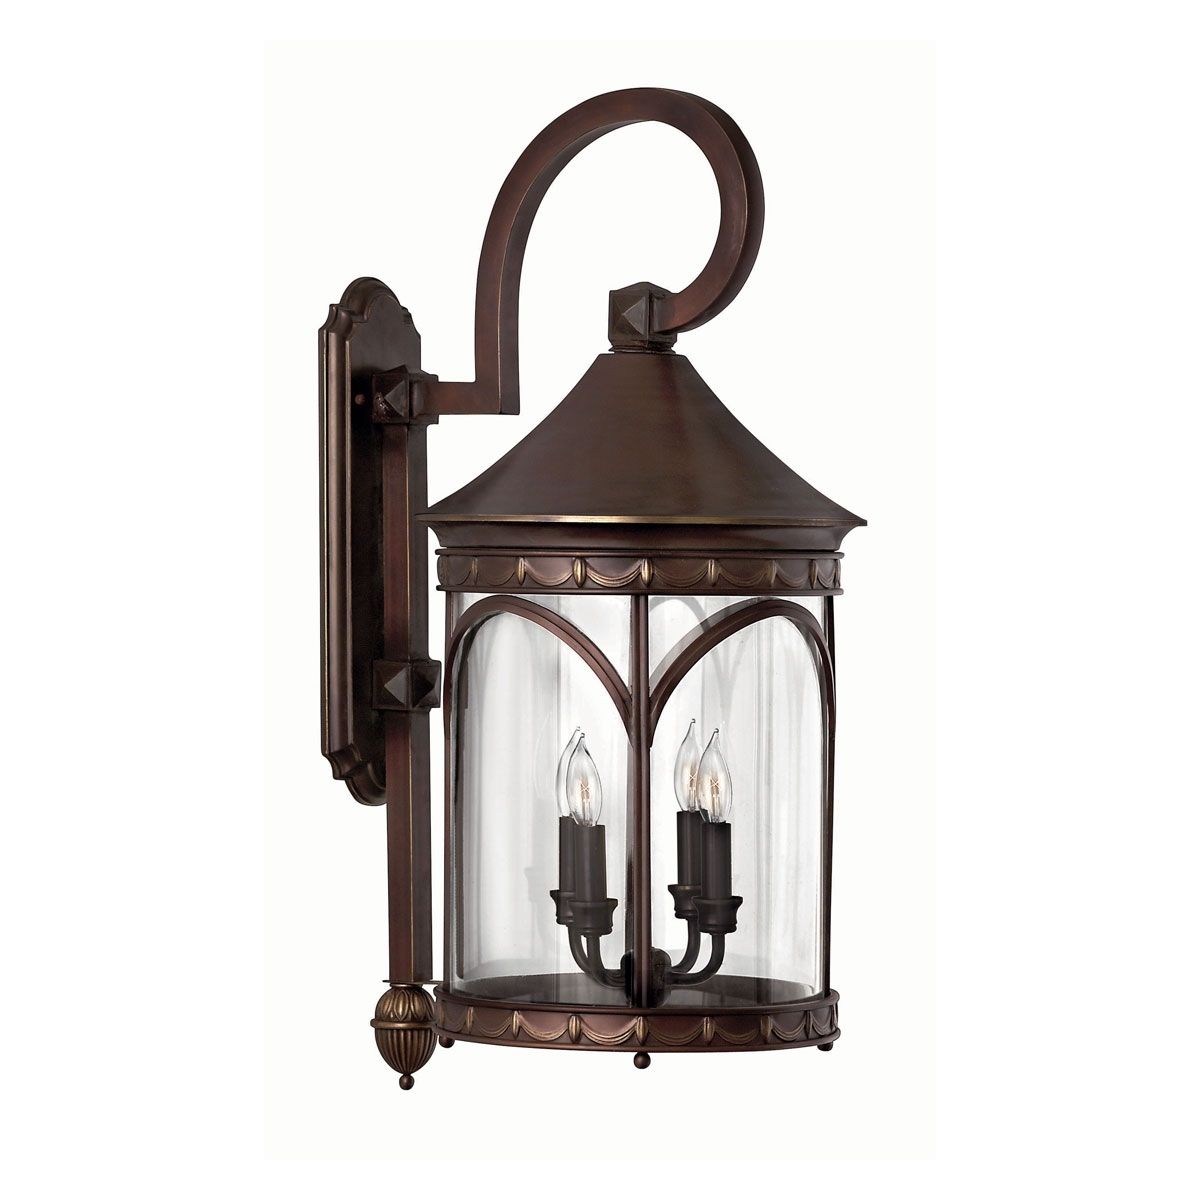 Most Current Copper Outdoor Ceiling Lights With Regard To 2315cb – Large Wall Outdoor Light, 30 Inch, Lucerne Copper Bronze (View 17 of 20)